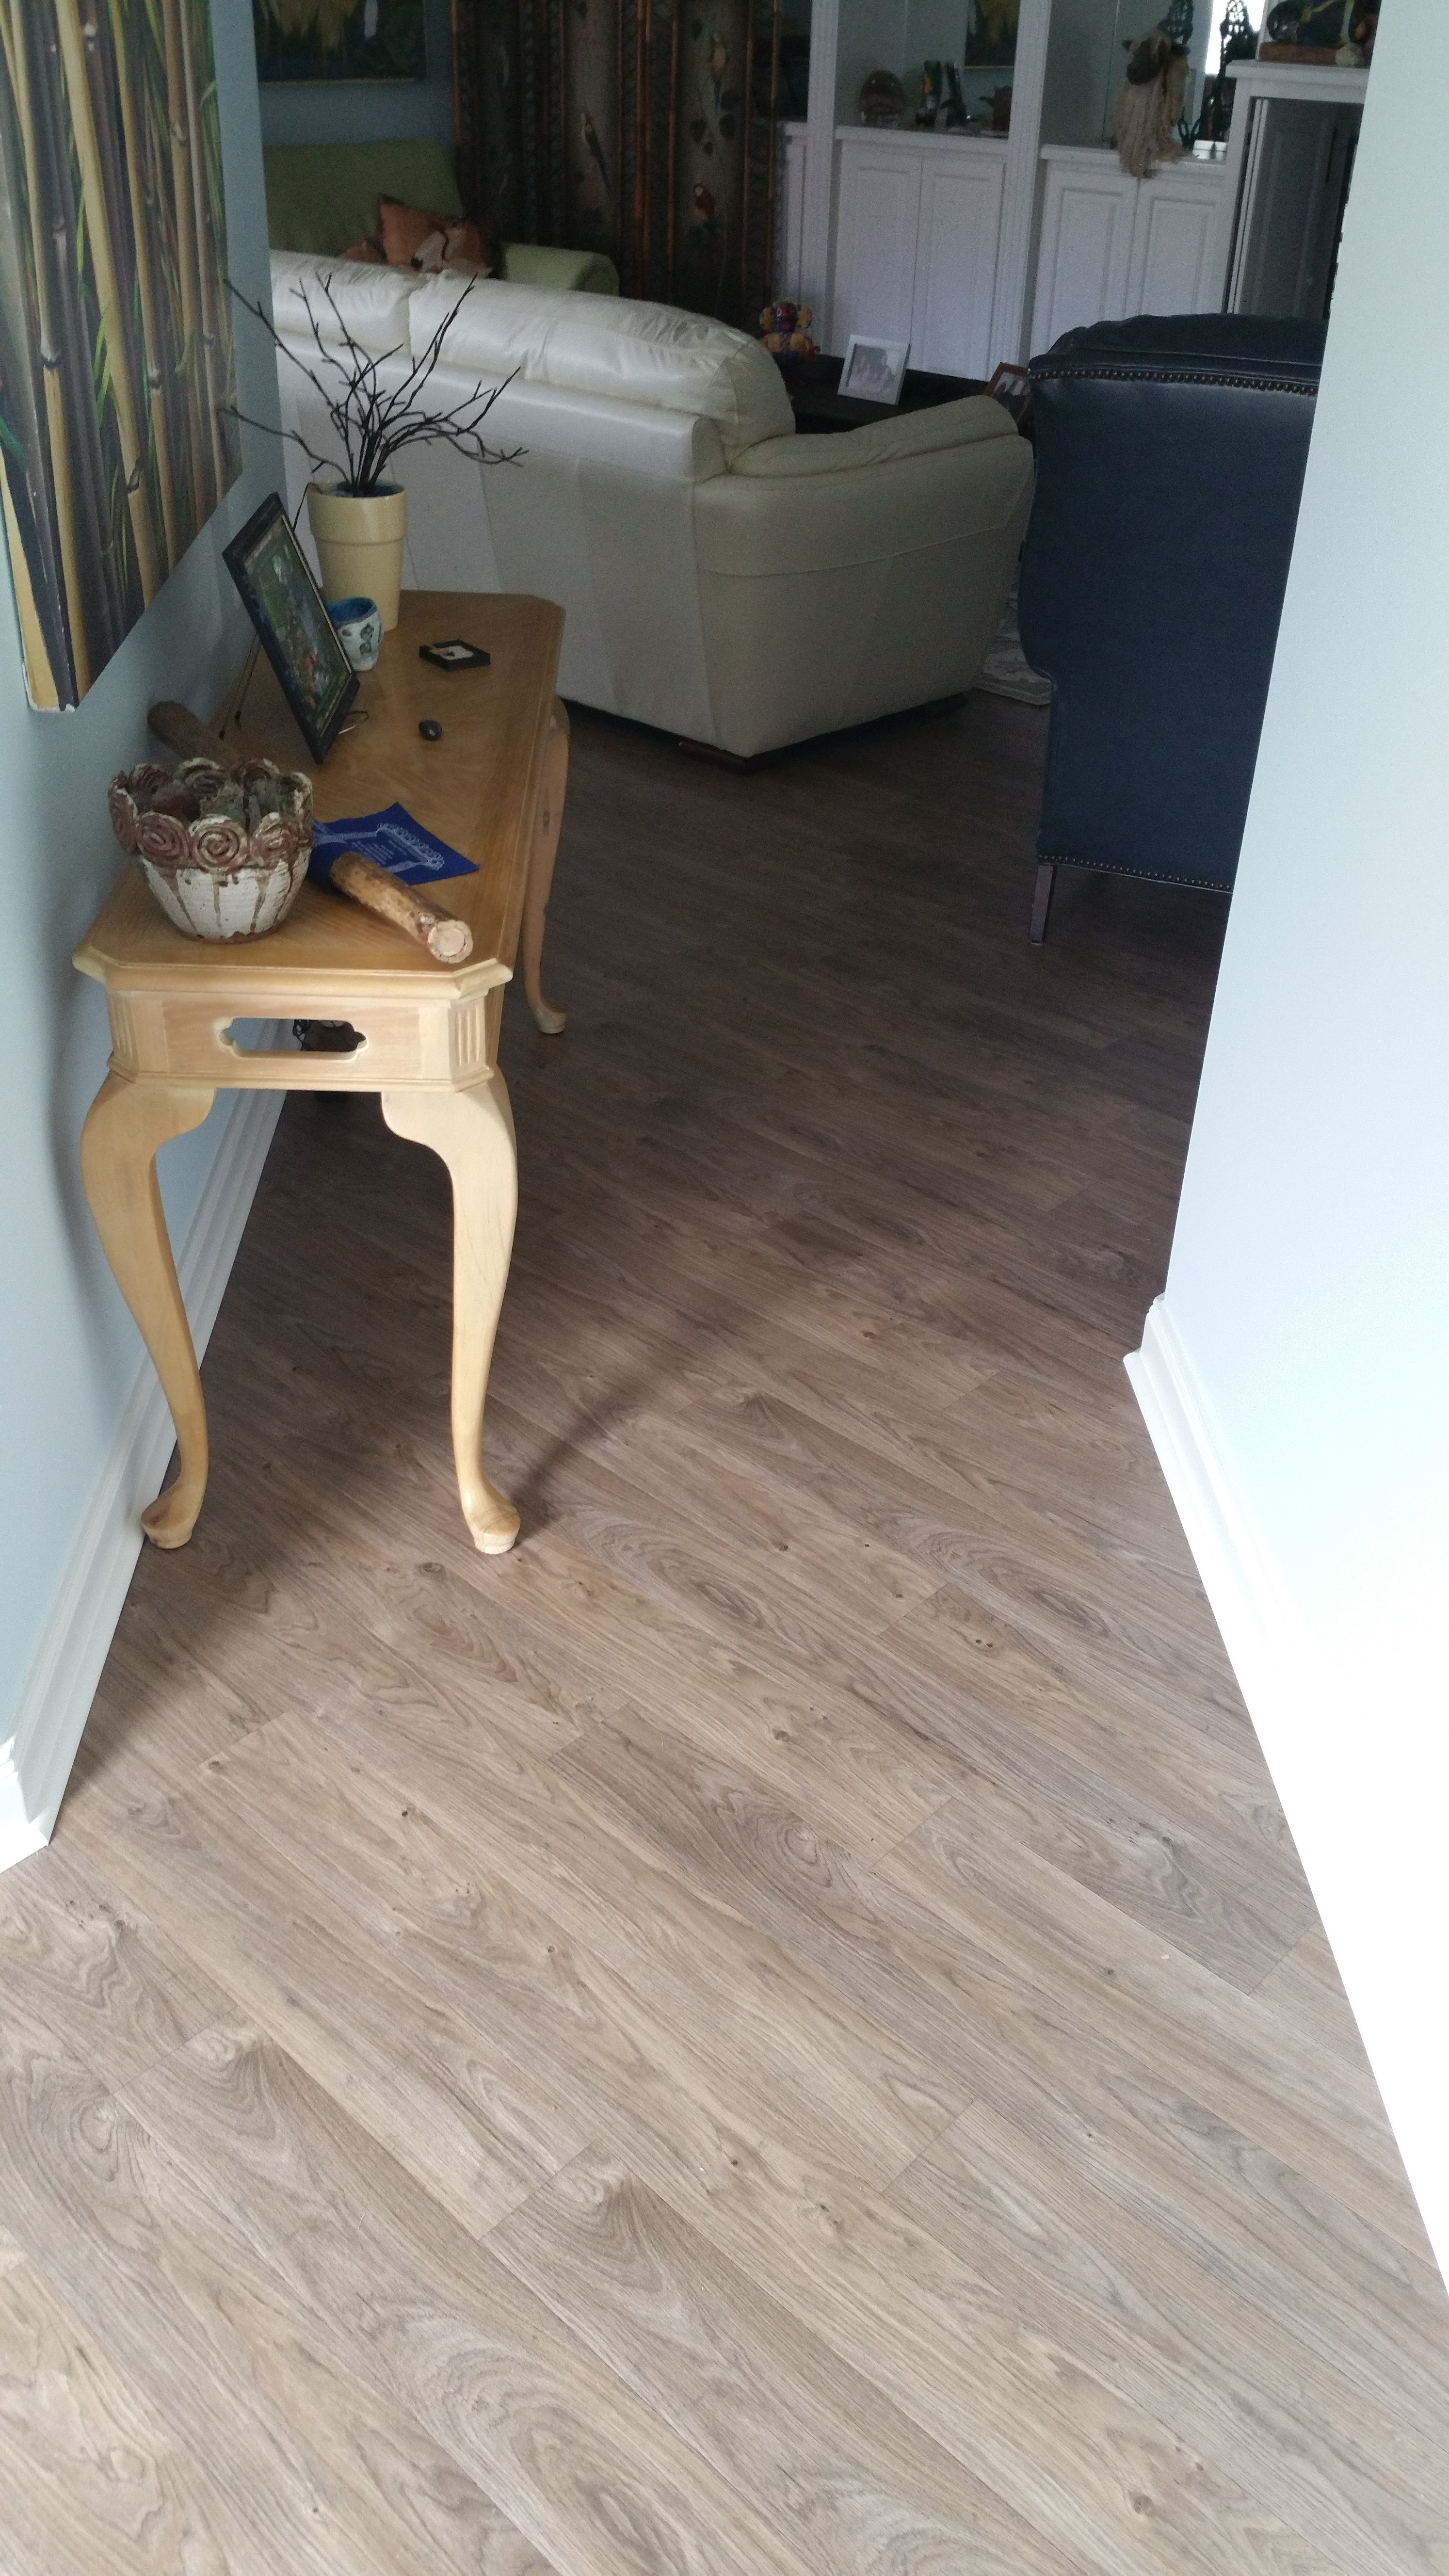 bleached walnut colored hardwood set at angle to hallway with side board holding photos, etc